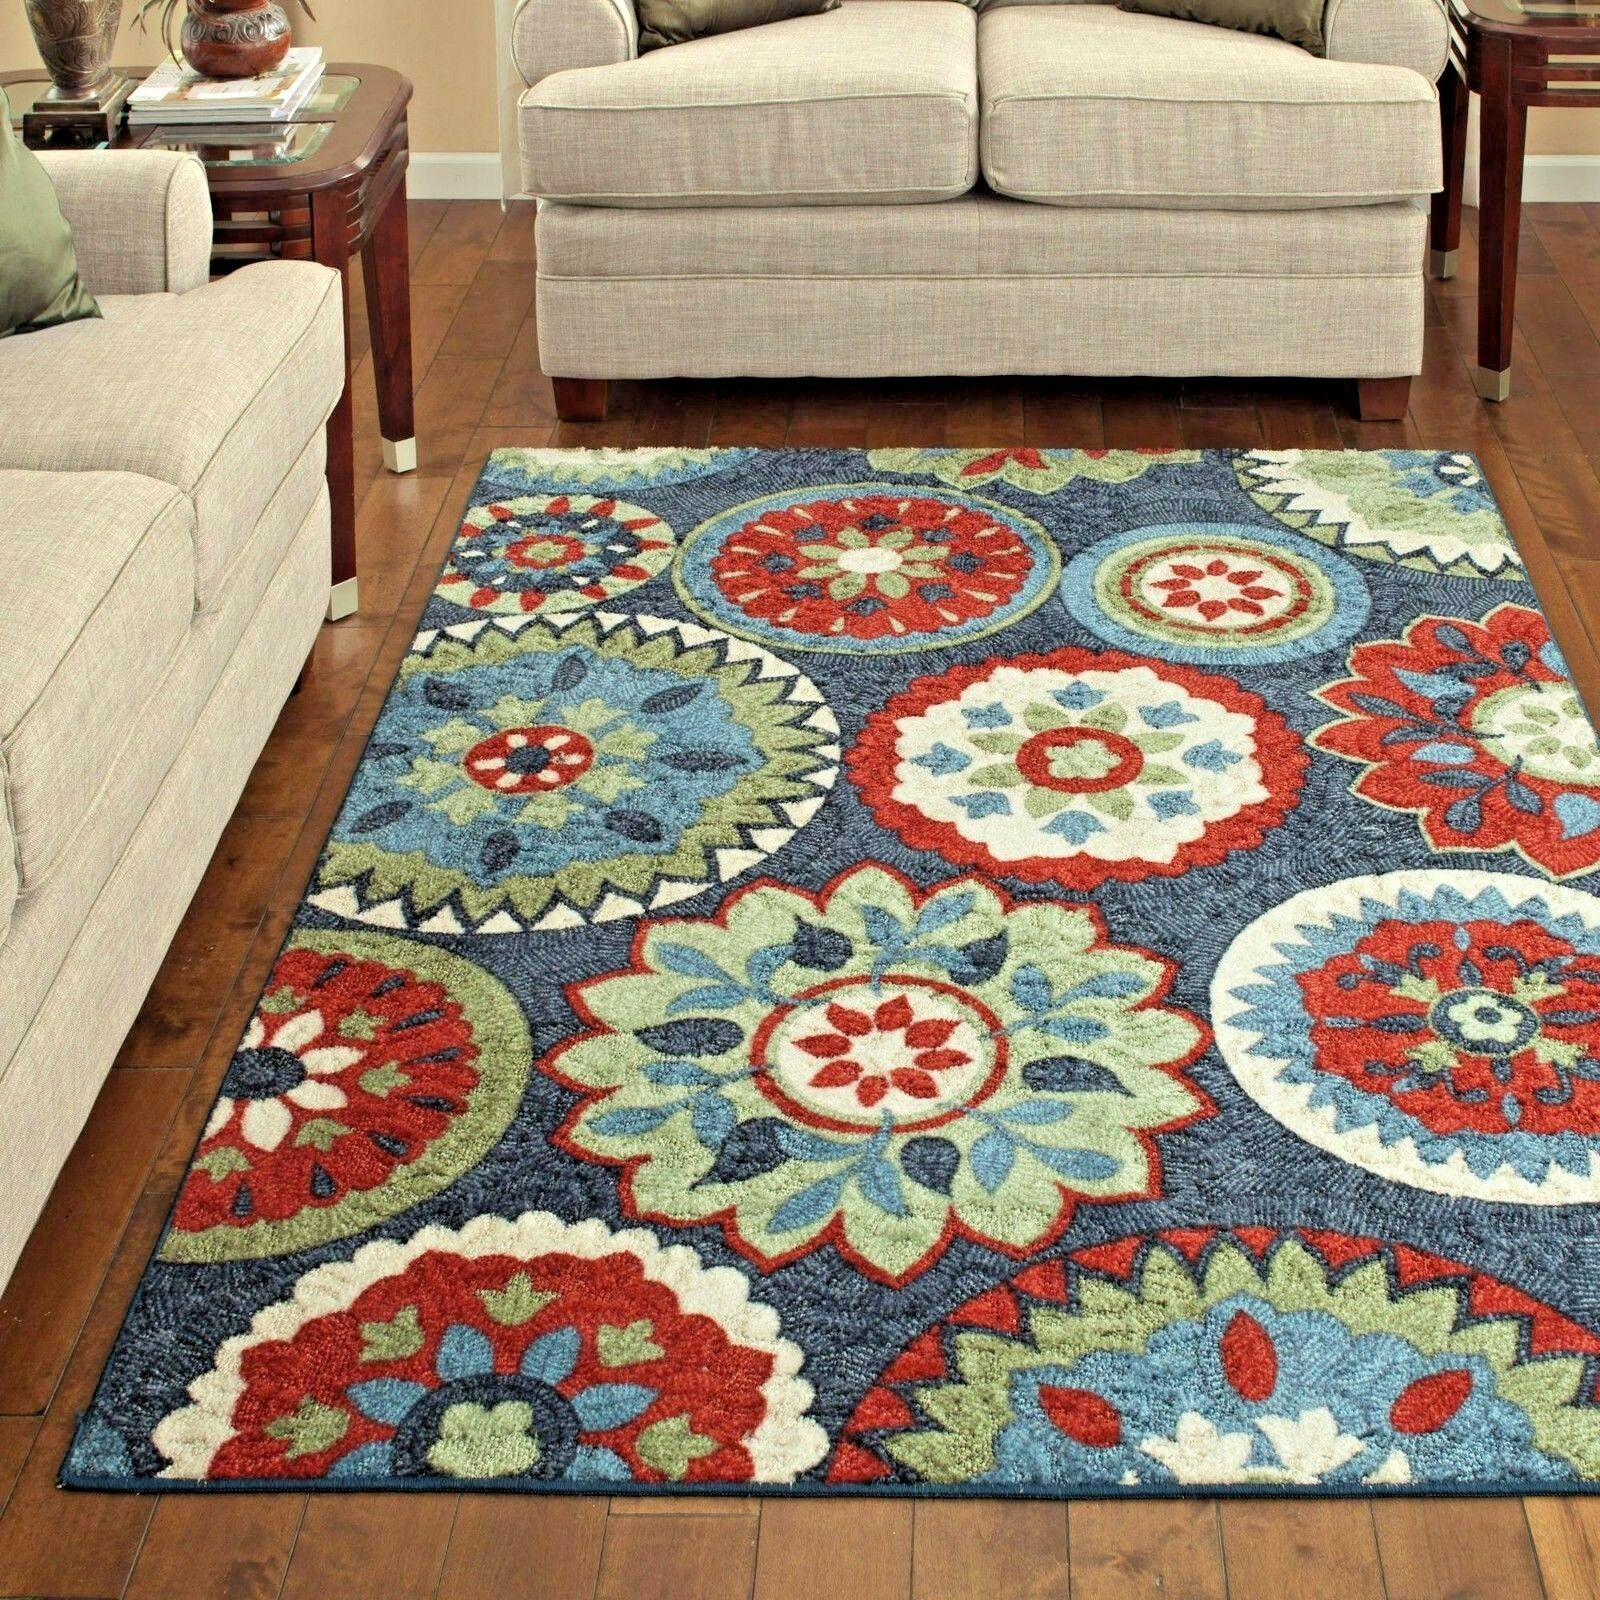 Rugs Area Rugs Carpet Area Rug Floor Modern Floral Large Colorful